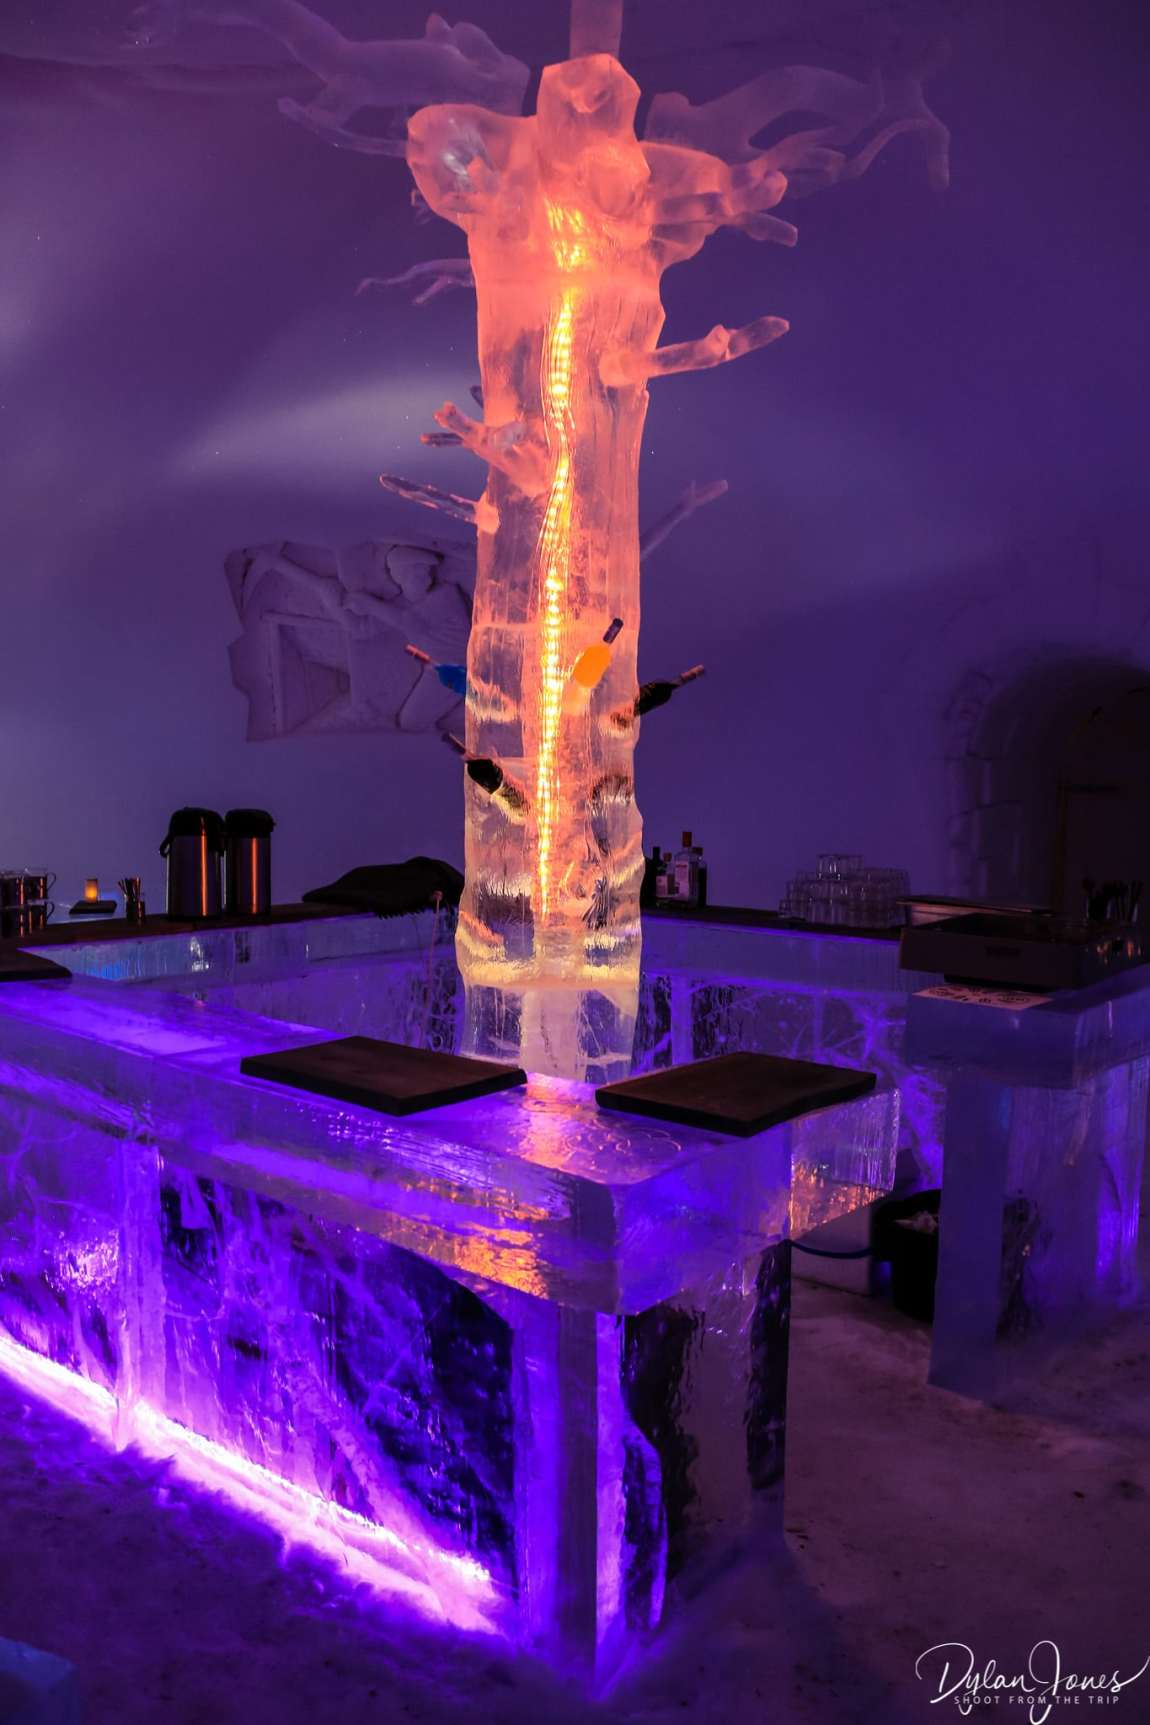 Ice bar and shelving feature at the Ice Restaurant, Saariselkä Lapland